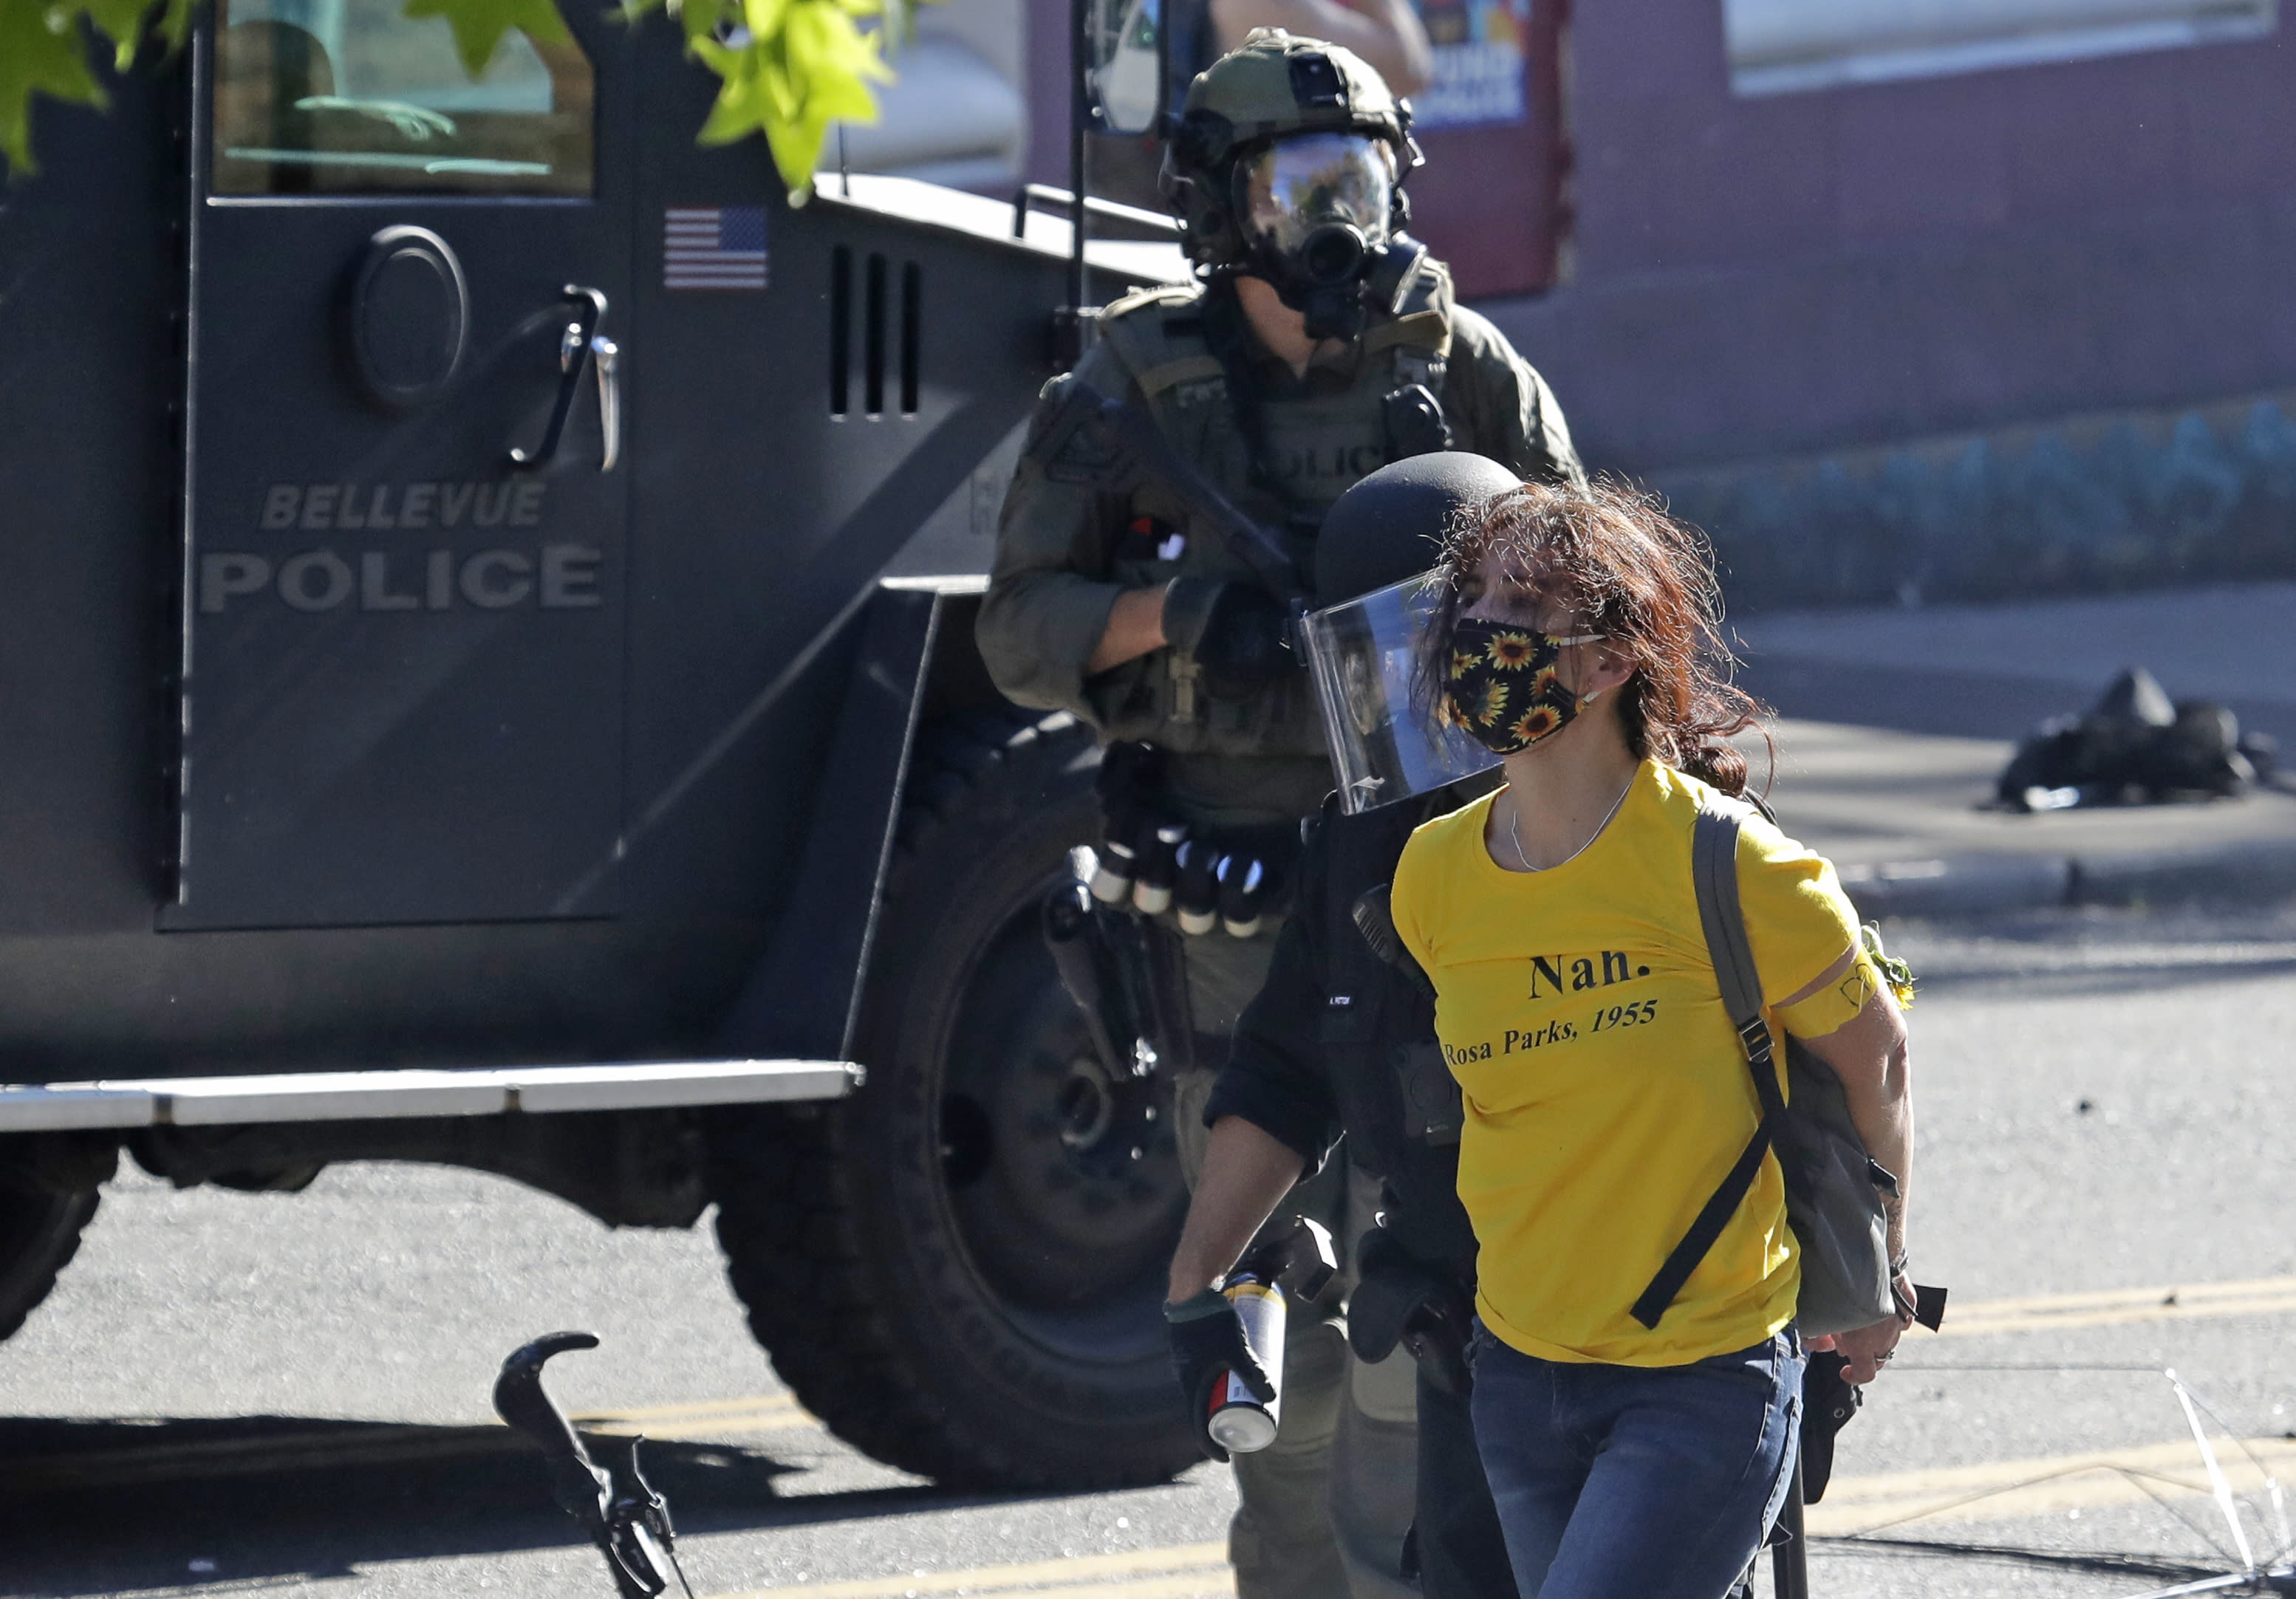 """Police arrest a person wearing a yellow shirt an armband that reads """"Mom,"""" Saturday, July 25, 2020, during a Black Lives Matter protest near Seattle Central Community College in Seattle. A large group of protesters were marching Saturday in Seattle in support of Black Lives Matter and against police brutality and racial injustice. (AP Photo/Ted S. Warren)"""